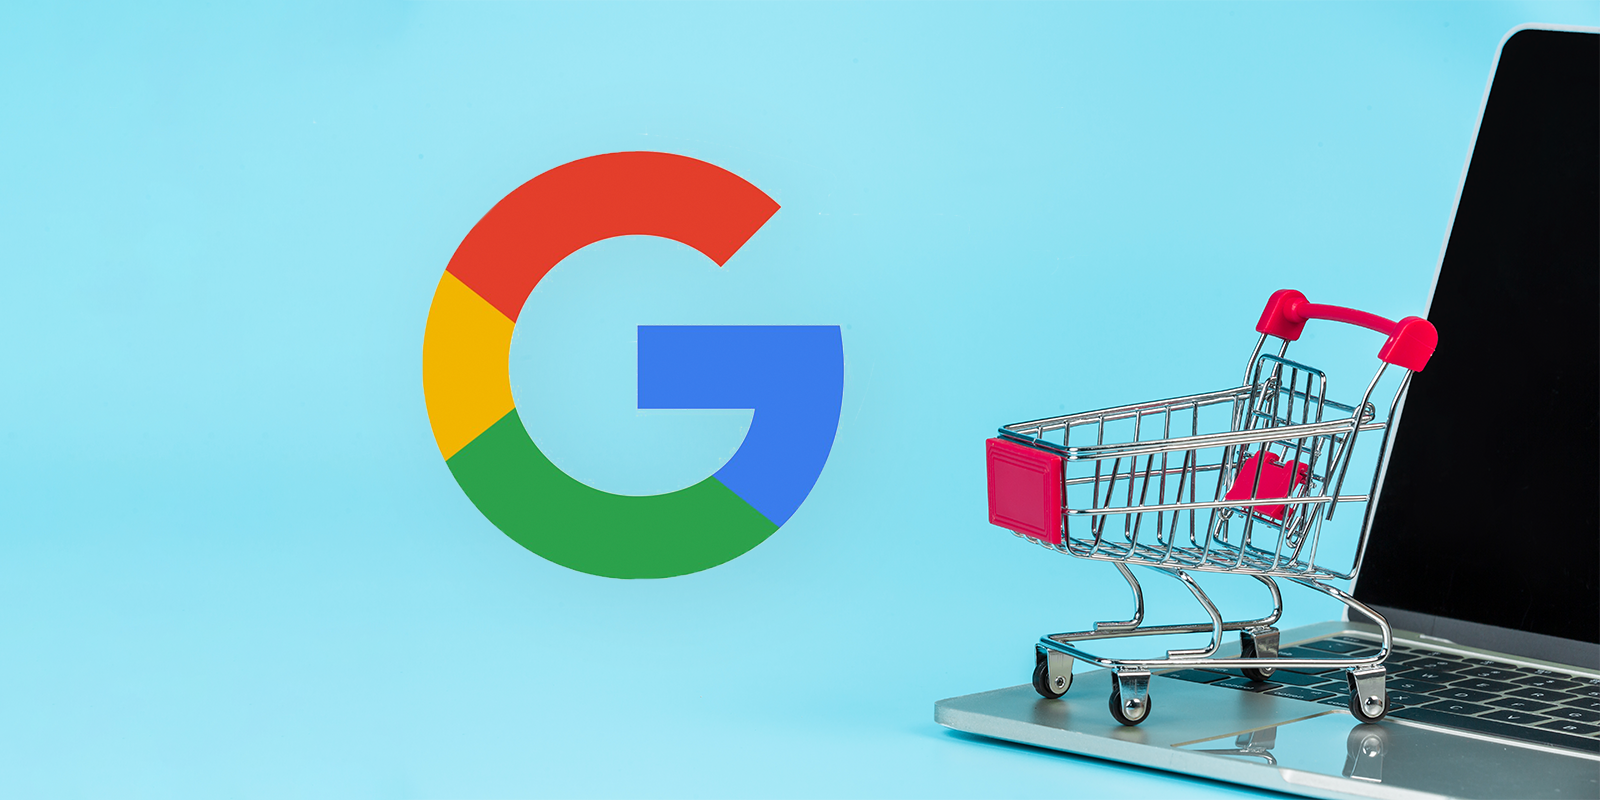 The Impact of GoogleΓÇÖs Material Design in Retail